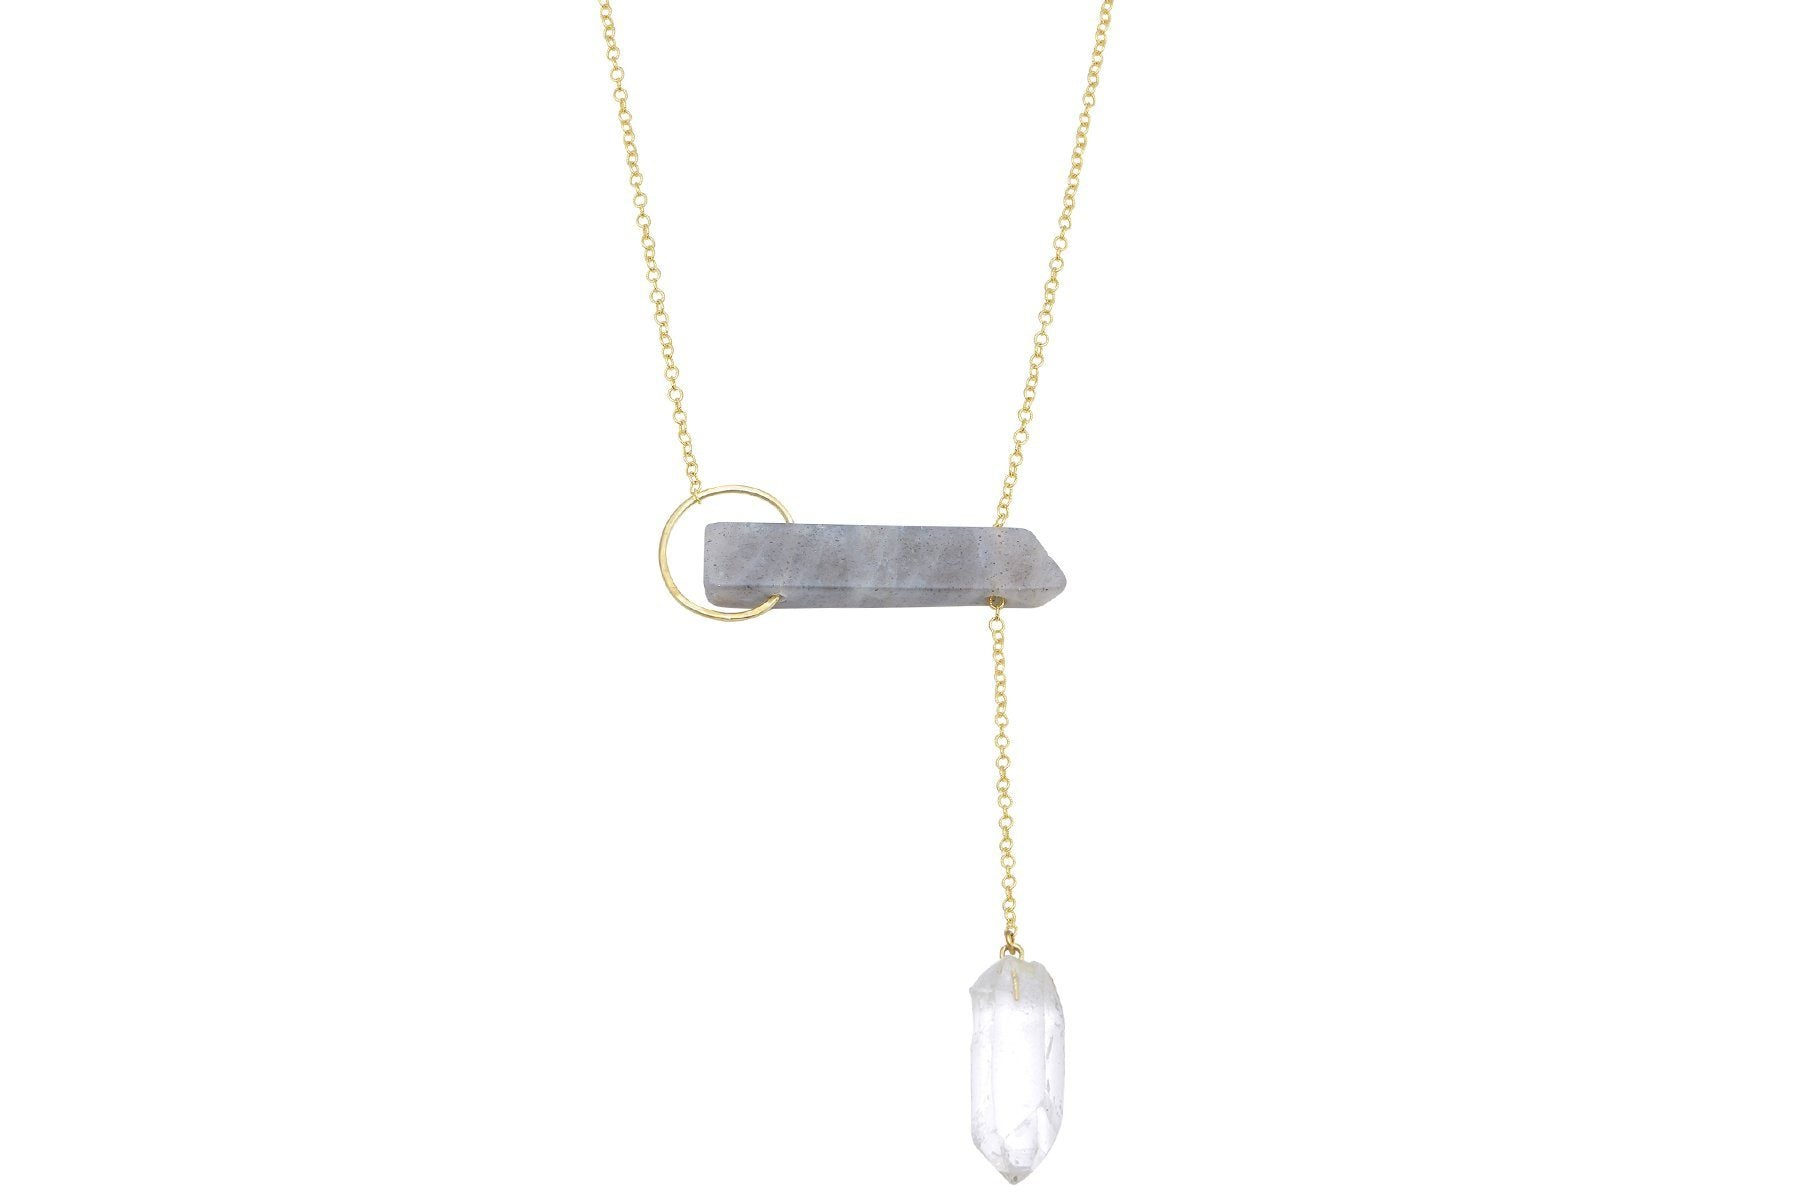 InSync necklace - Labradorite Bar & Clear Quartz Point - Amanda K Lockrow